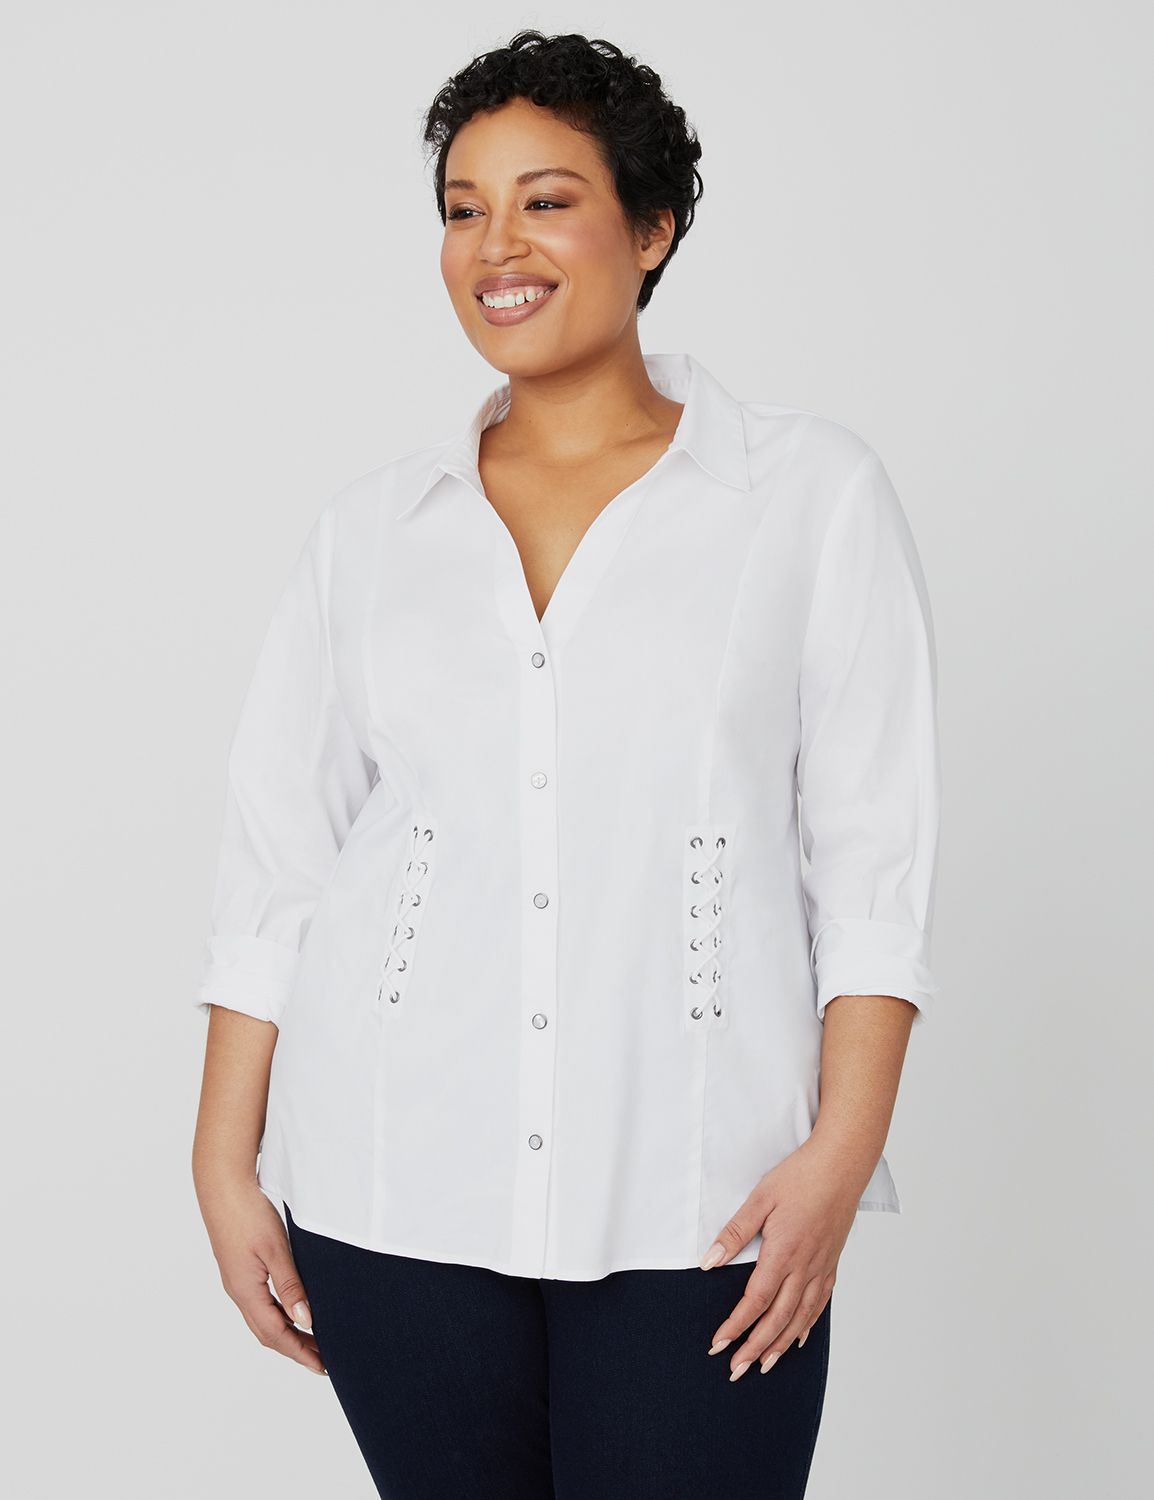 Curvy Collection Lace-Up Shirt 1091263 Curvy Collection Button Fro MP-300098696